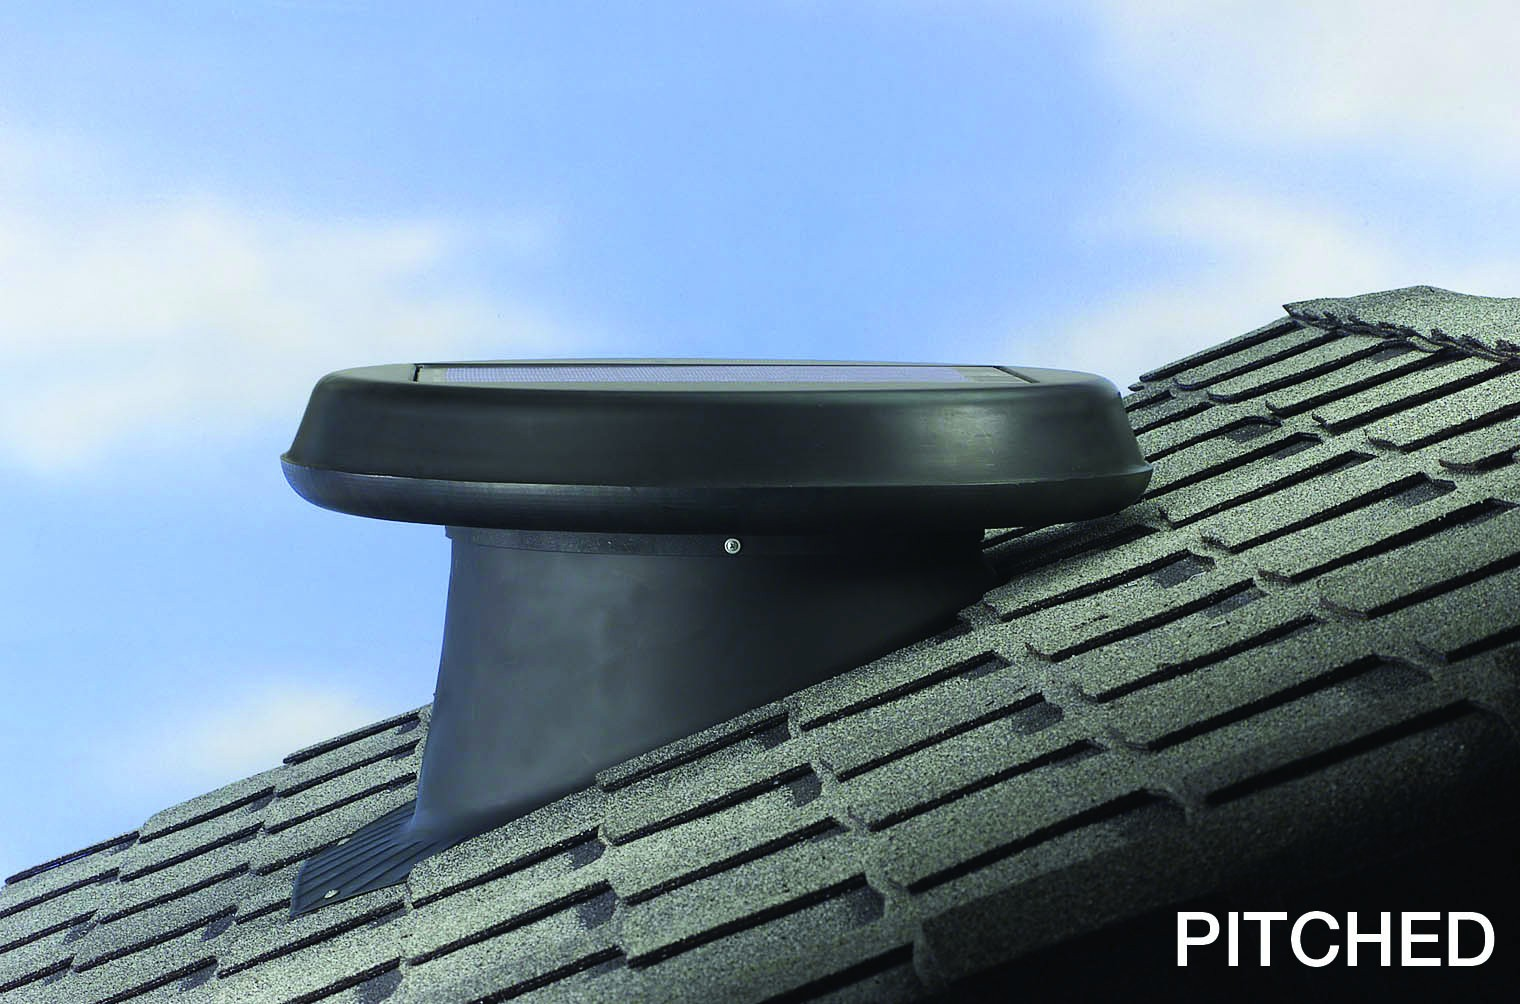 Solar Star Roof Attic Solar Fan / Vent Pitched Model by SolaTube RM1200